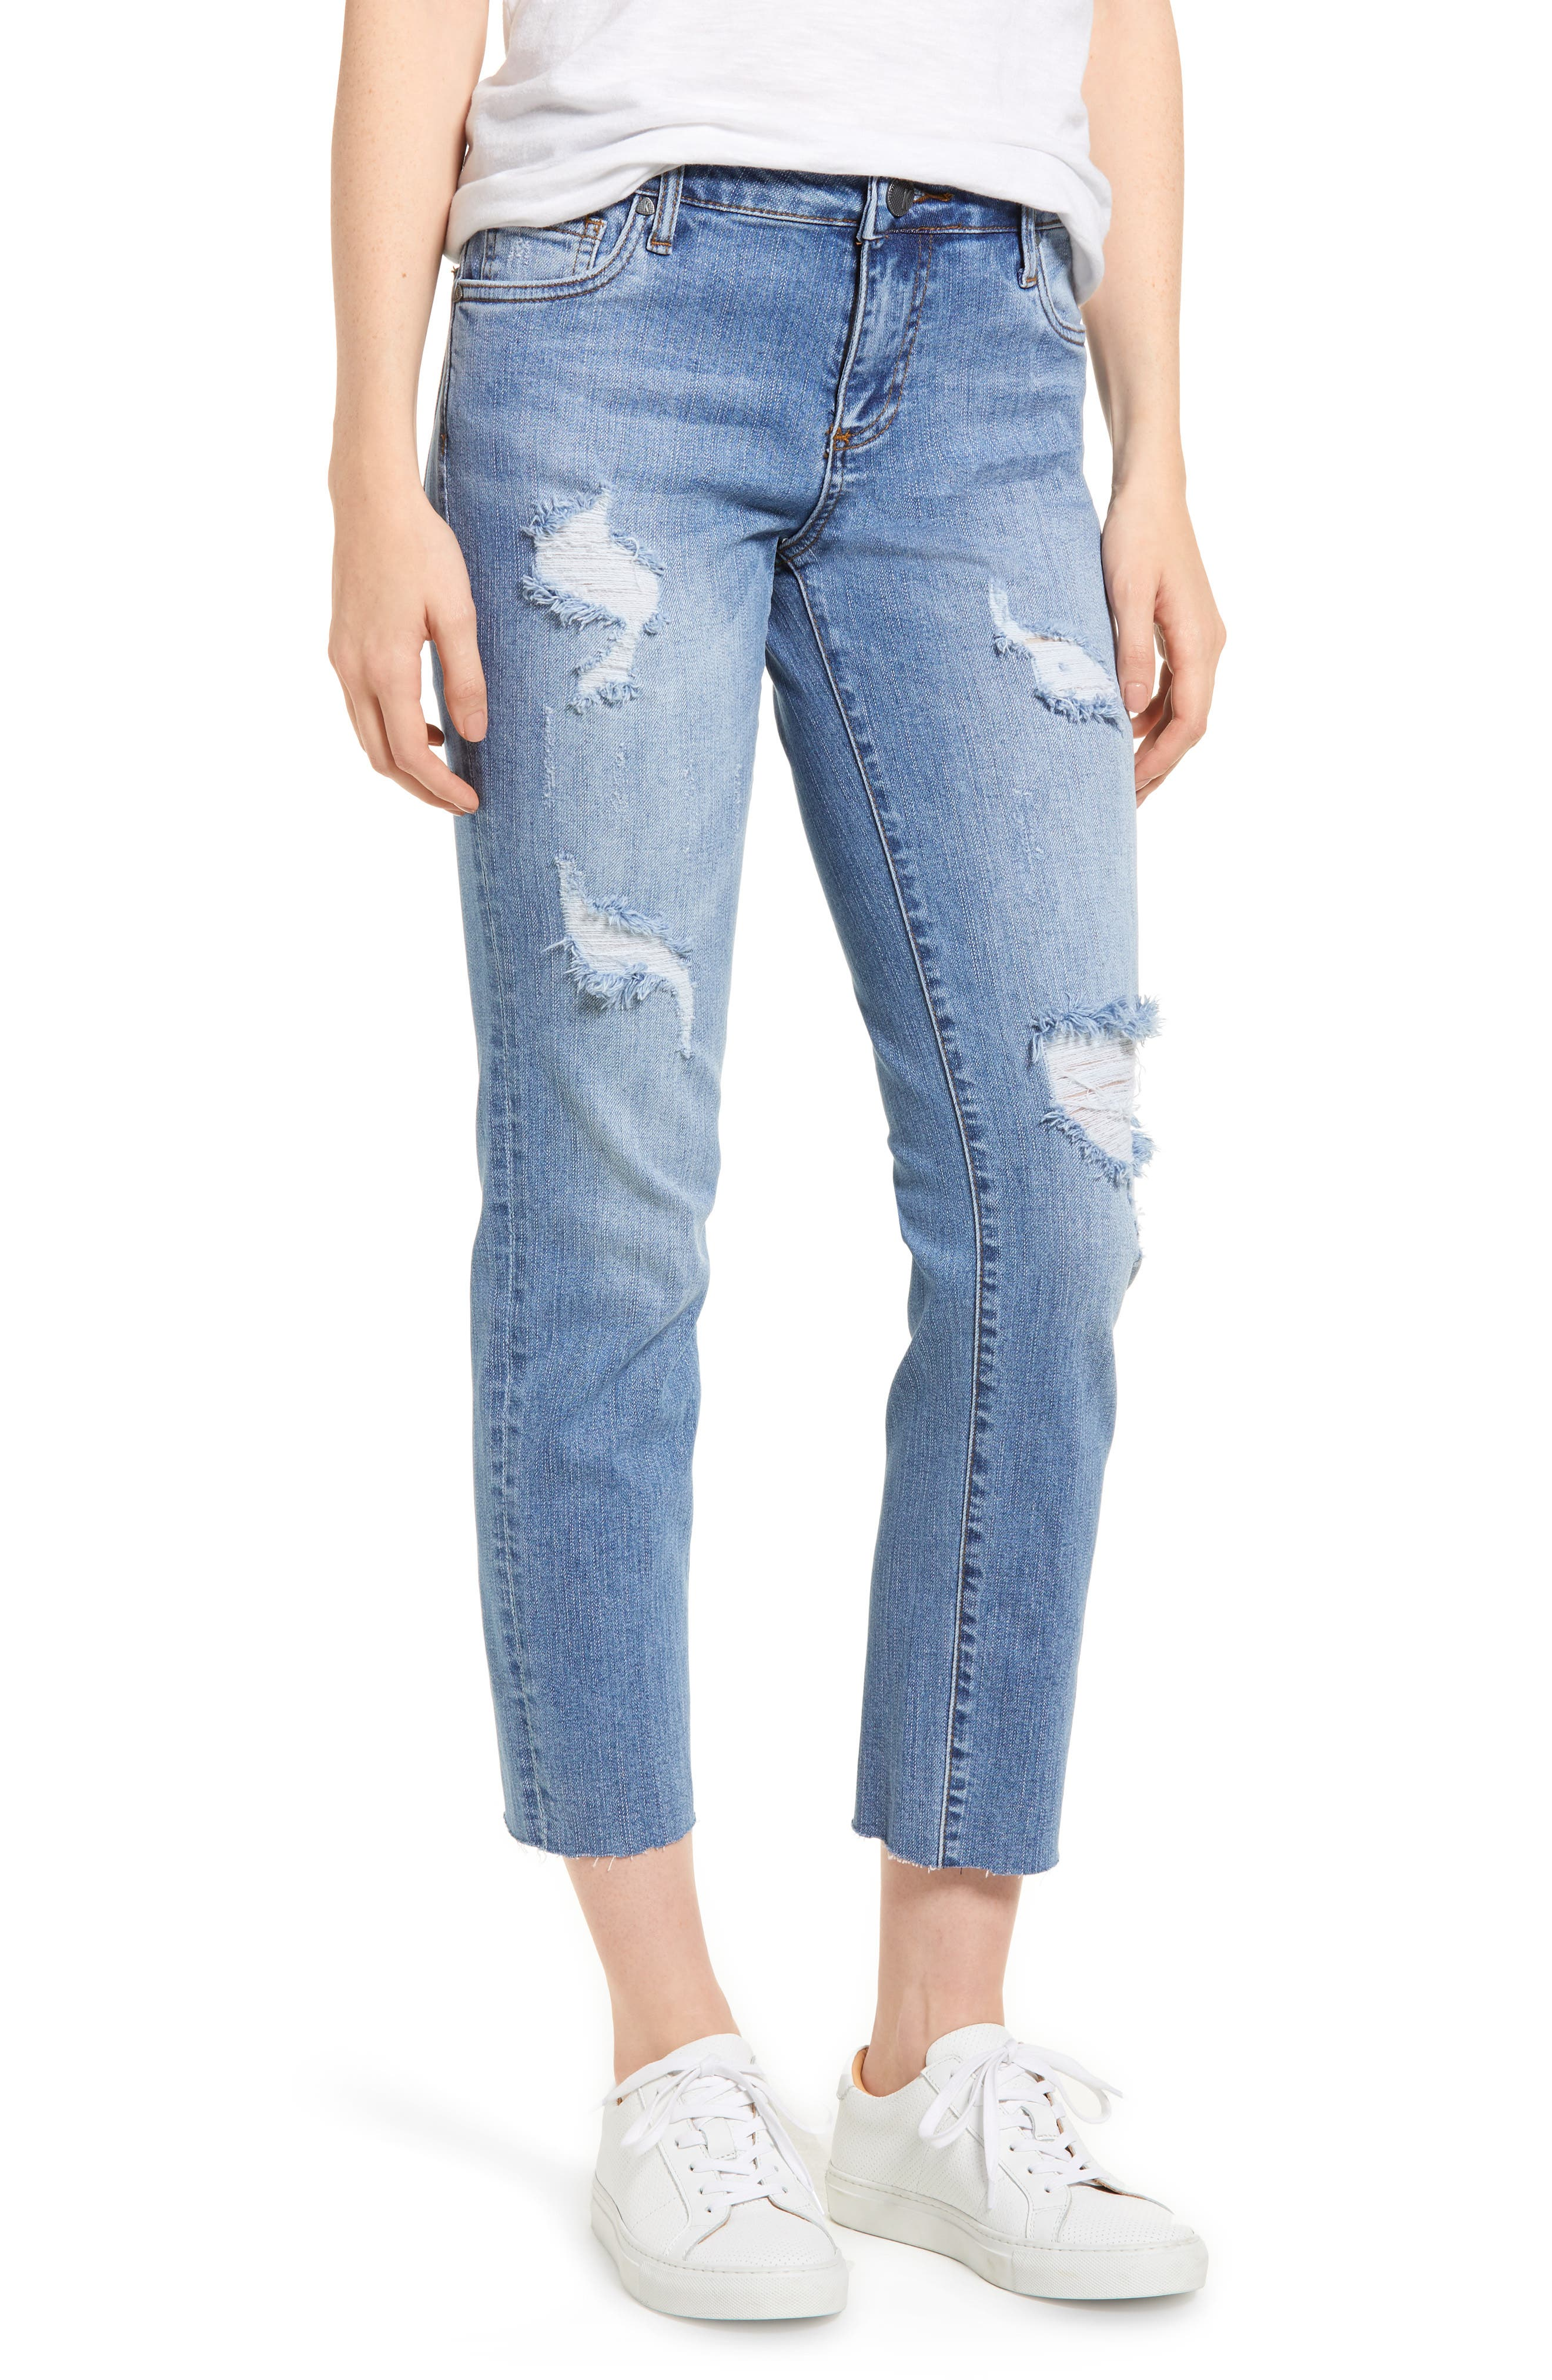 Reese Ripped Raw Edge Ankle Jeans,                         Main,                         color, Assess